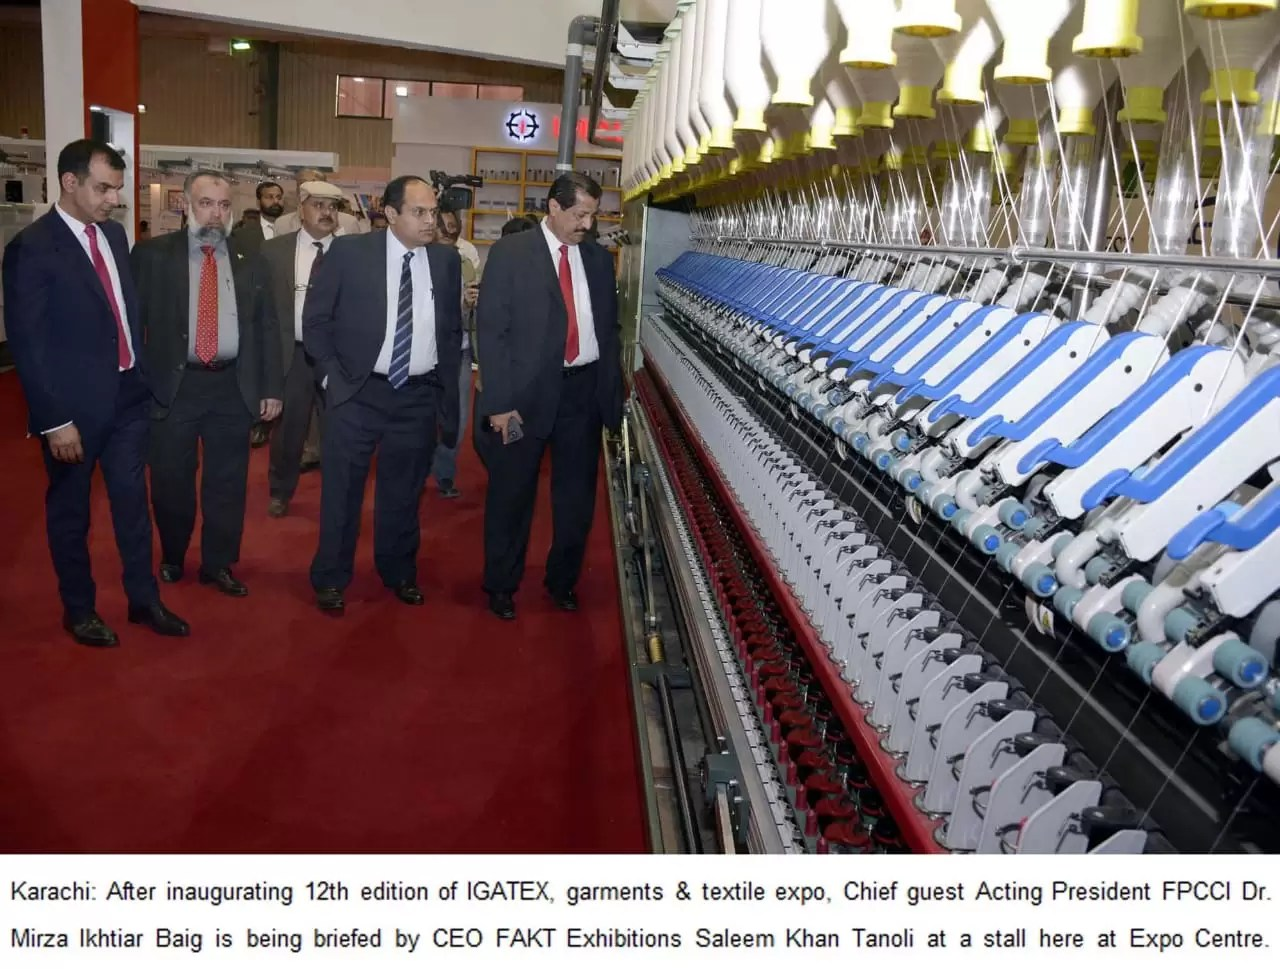 Three-Day Textile And Garments Expo 'IGATEX' Opens In Karachi